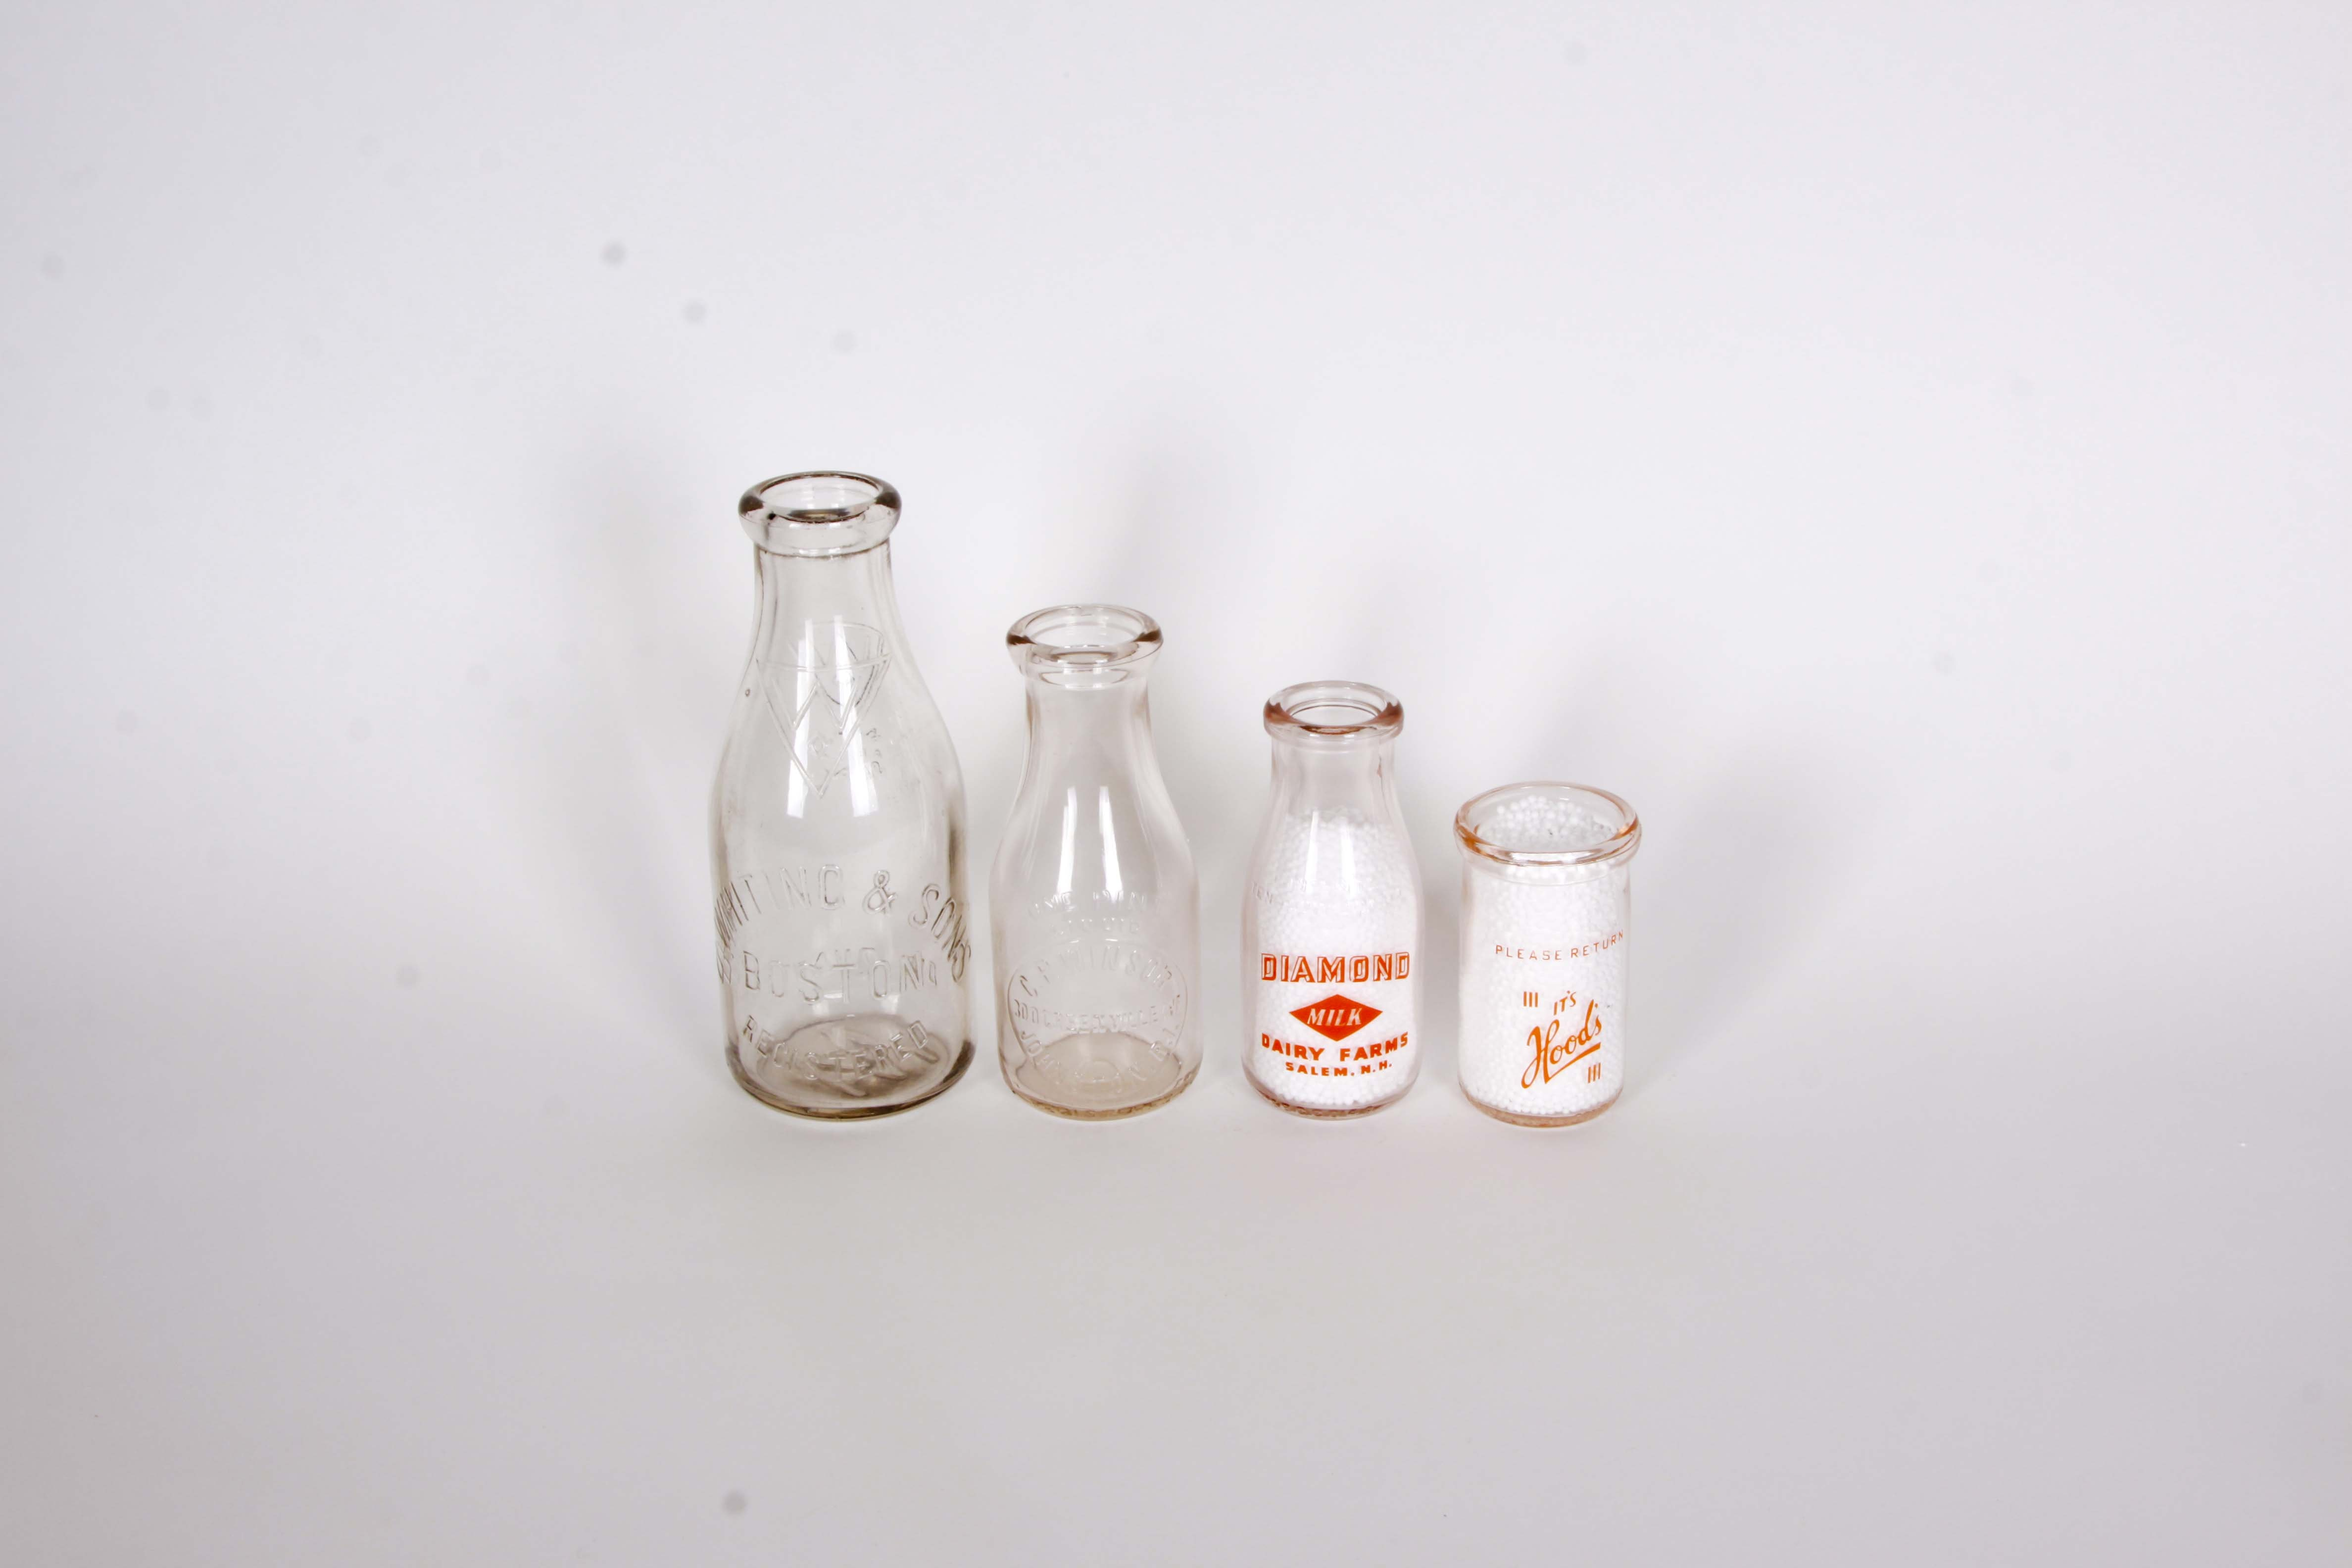 A Group of Vintage New Hampshire, Rhode Island and Boston, MA Milk Bottles